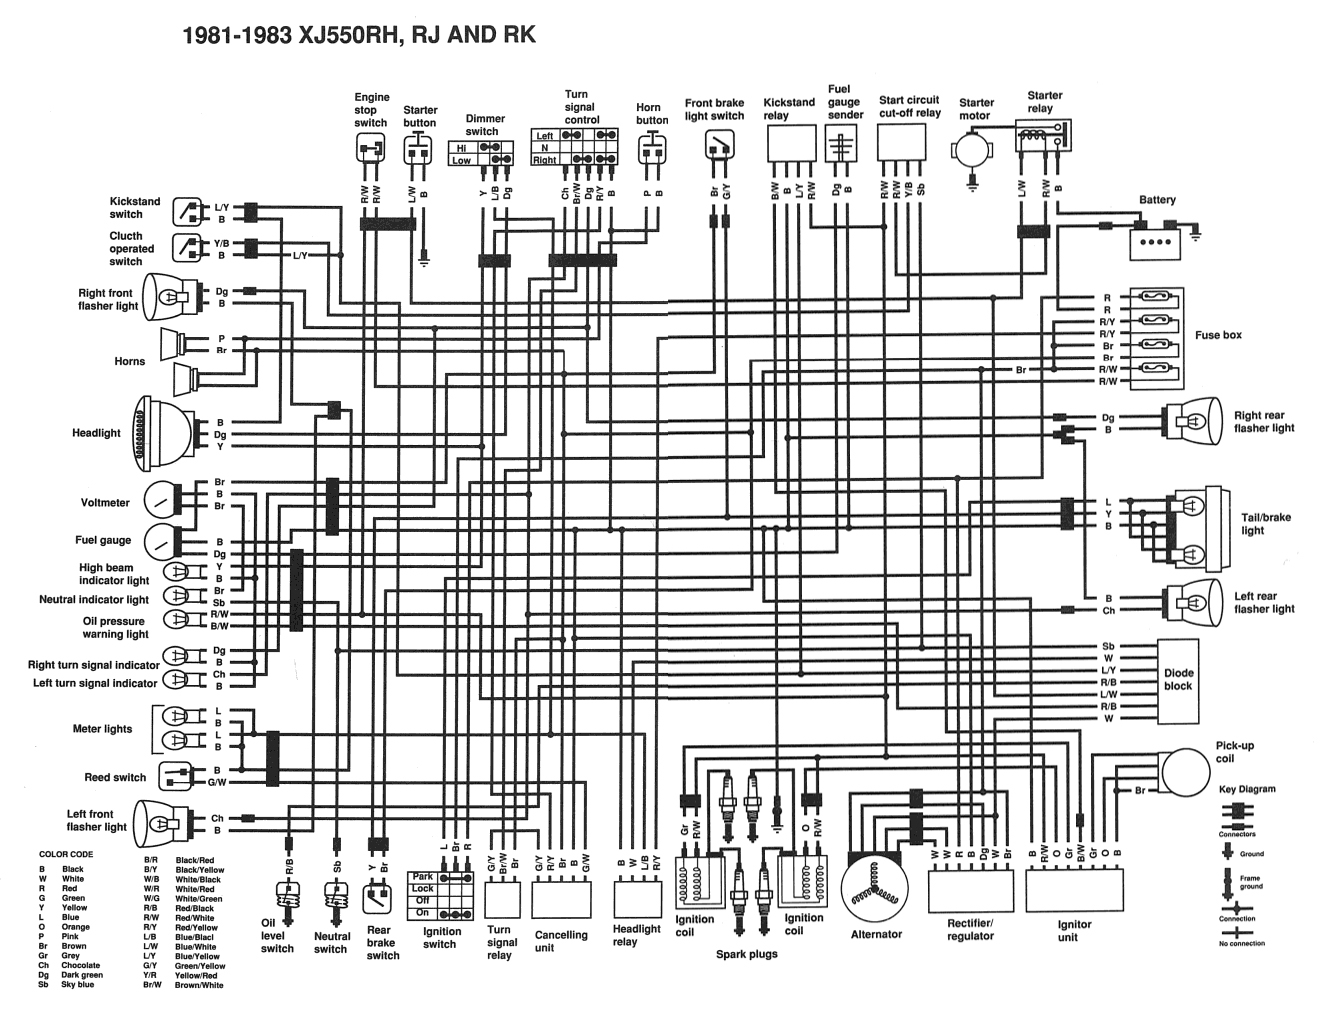 1982 xj550 wiring diagram 1983 yamaha xj550 wiring diagram